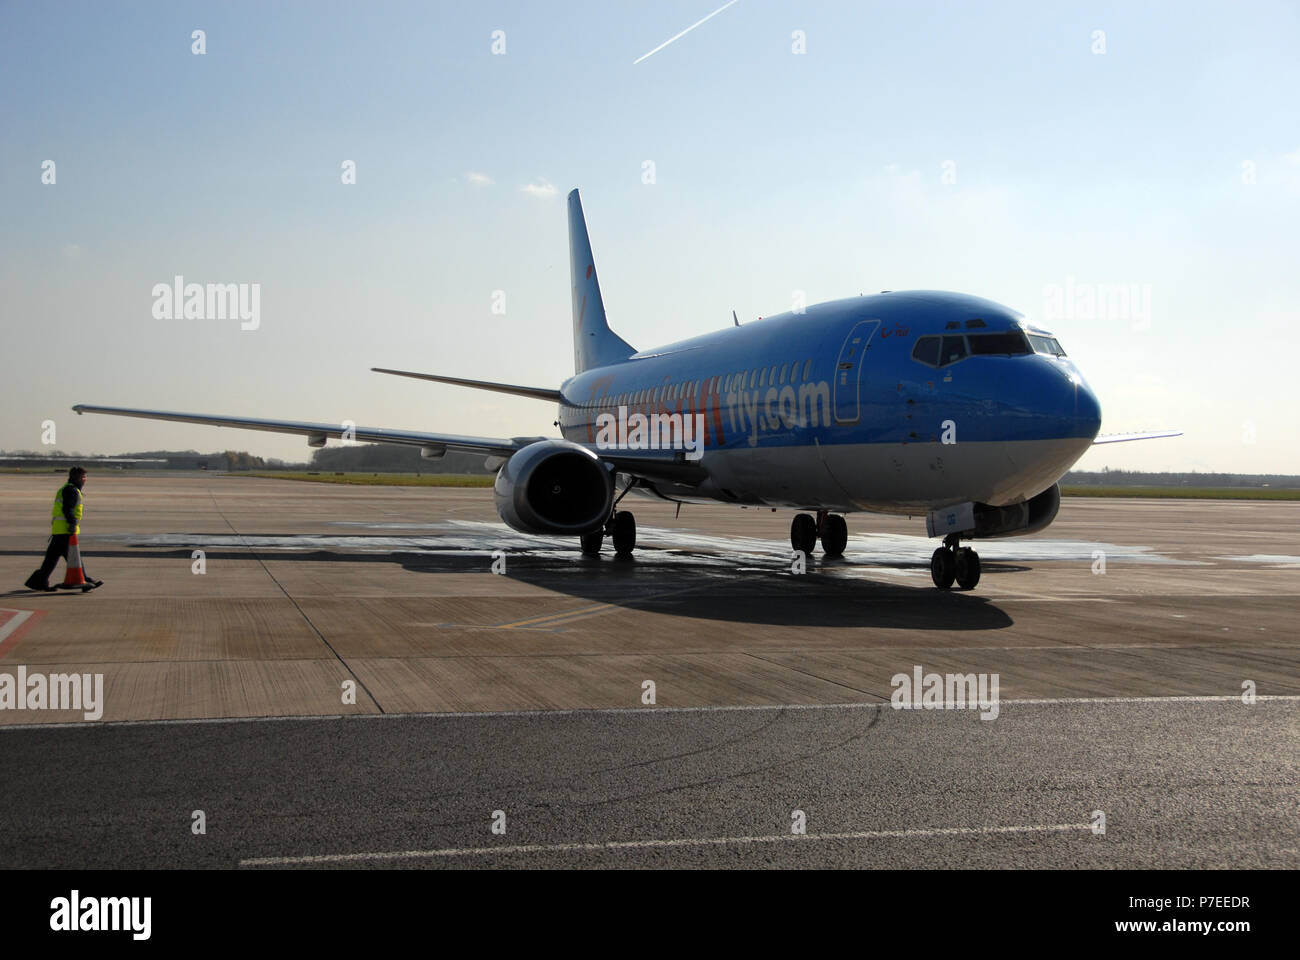 air staff greet a Thomson jet plane on airside tarmac at the Doncaster Sheffield Airport, formerly named Robin Hood Airport Doncaster Sheffield, - Stock Image